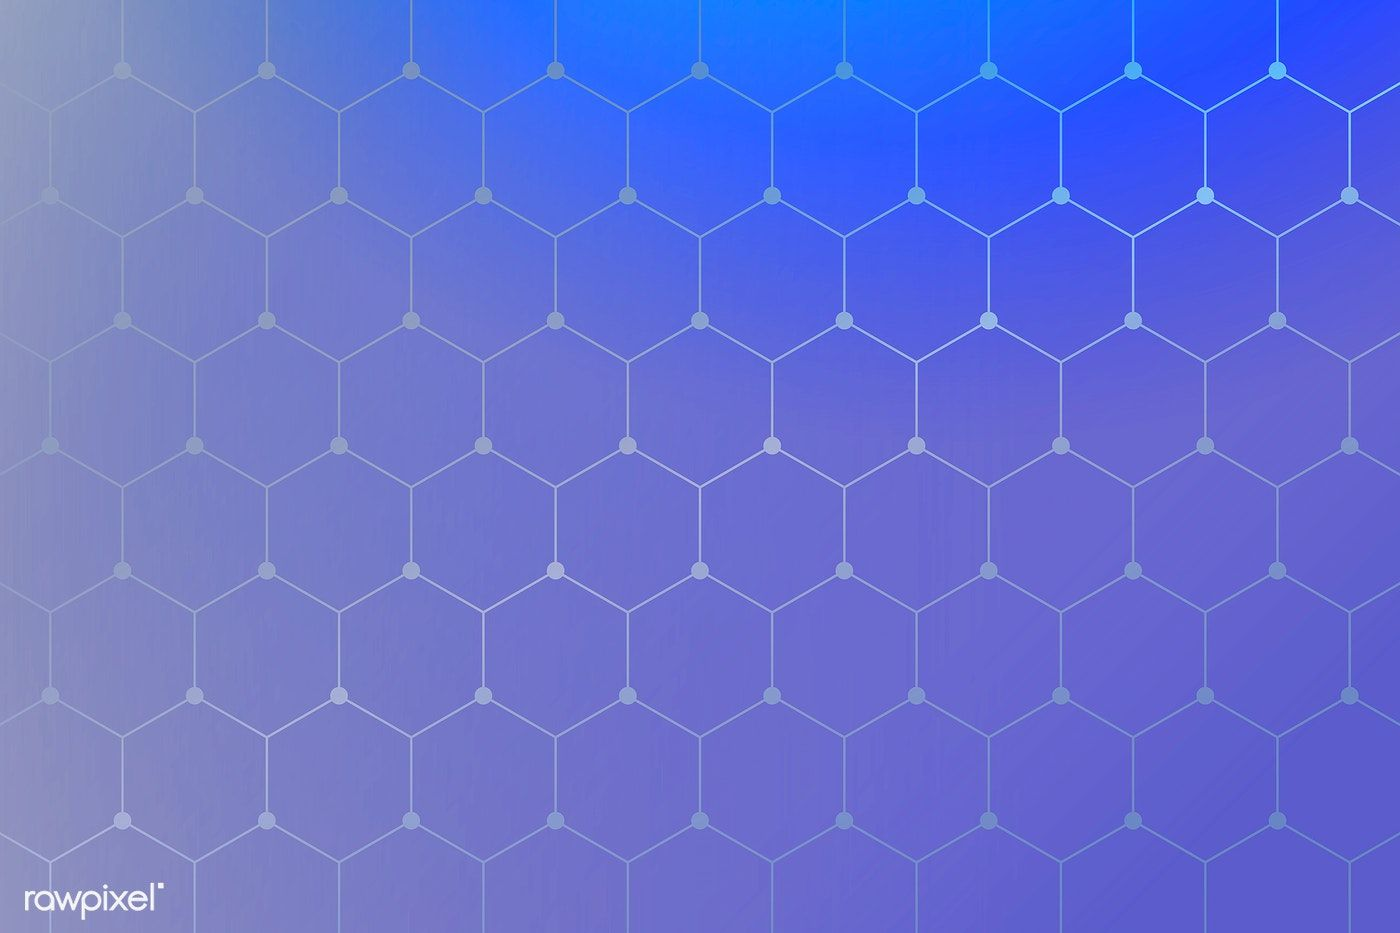 Honeycomb Patterned Blue Background Layer Free Image By Rawpixel Com Katie Honeycomb Pattern Blue Backgrounds Background